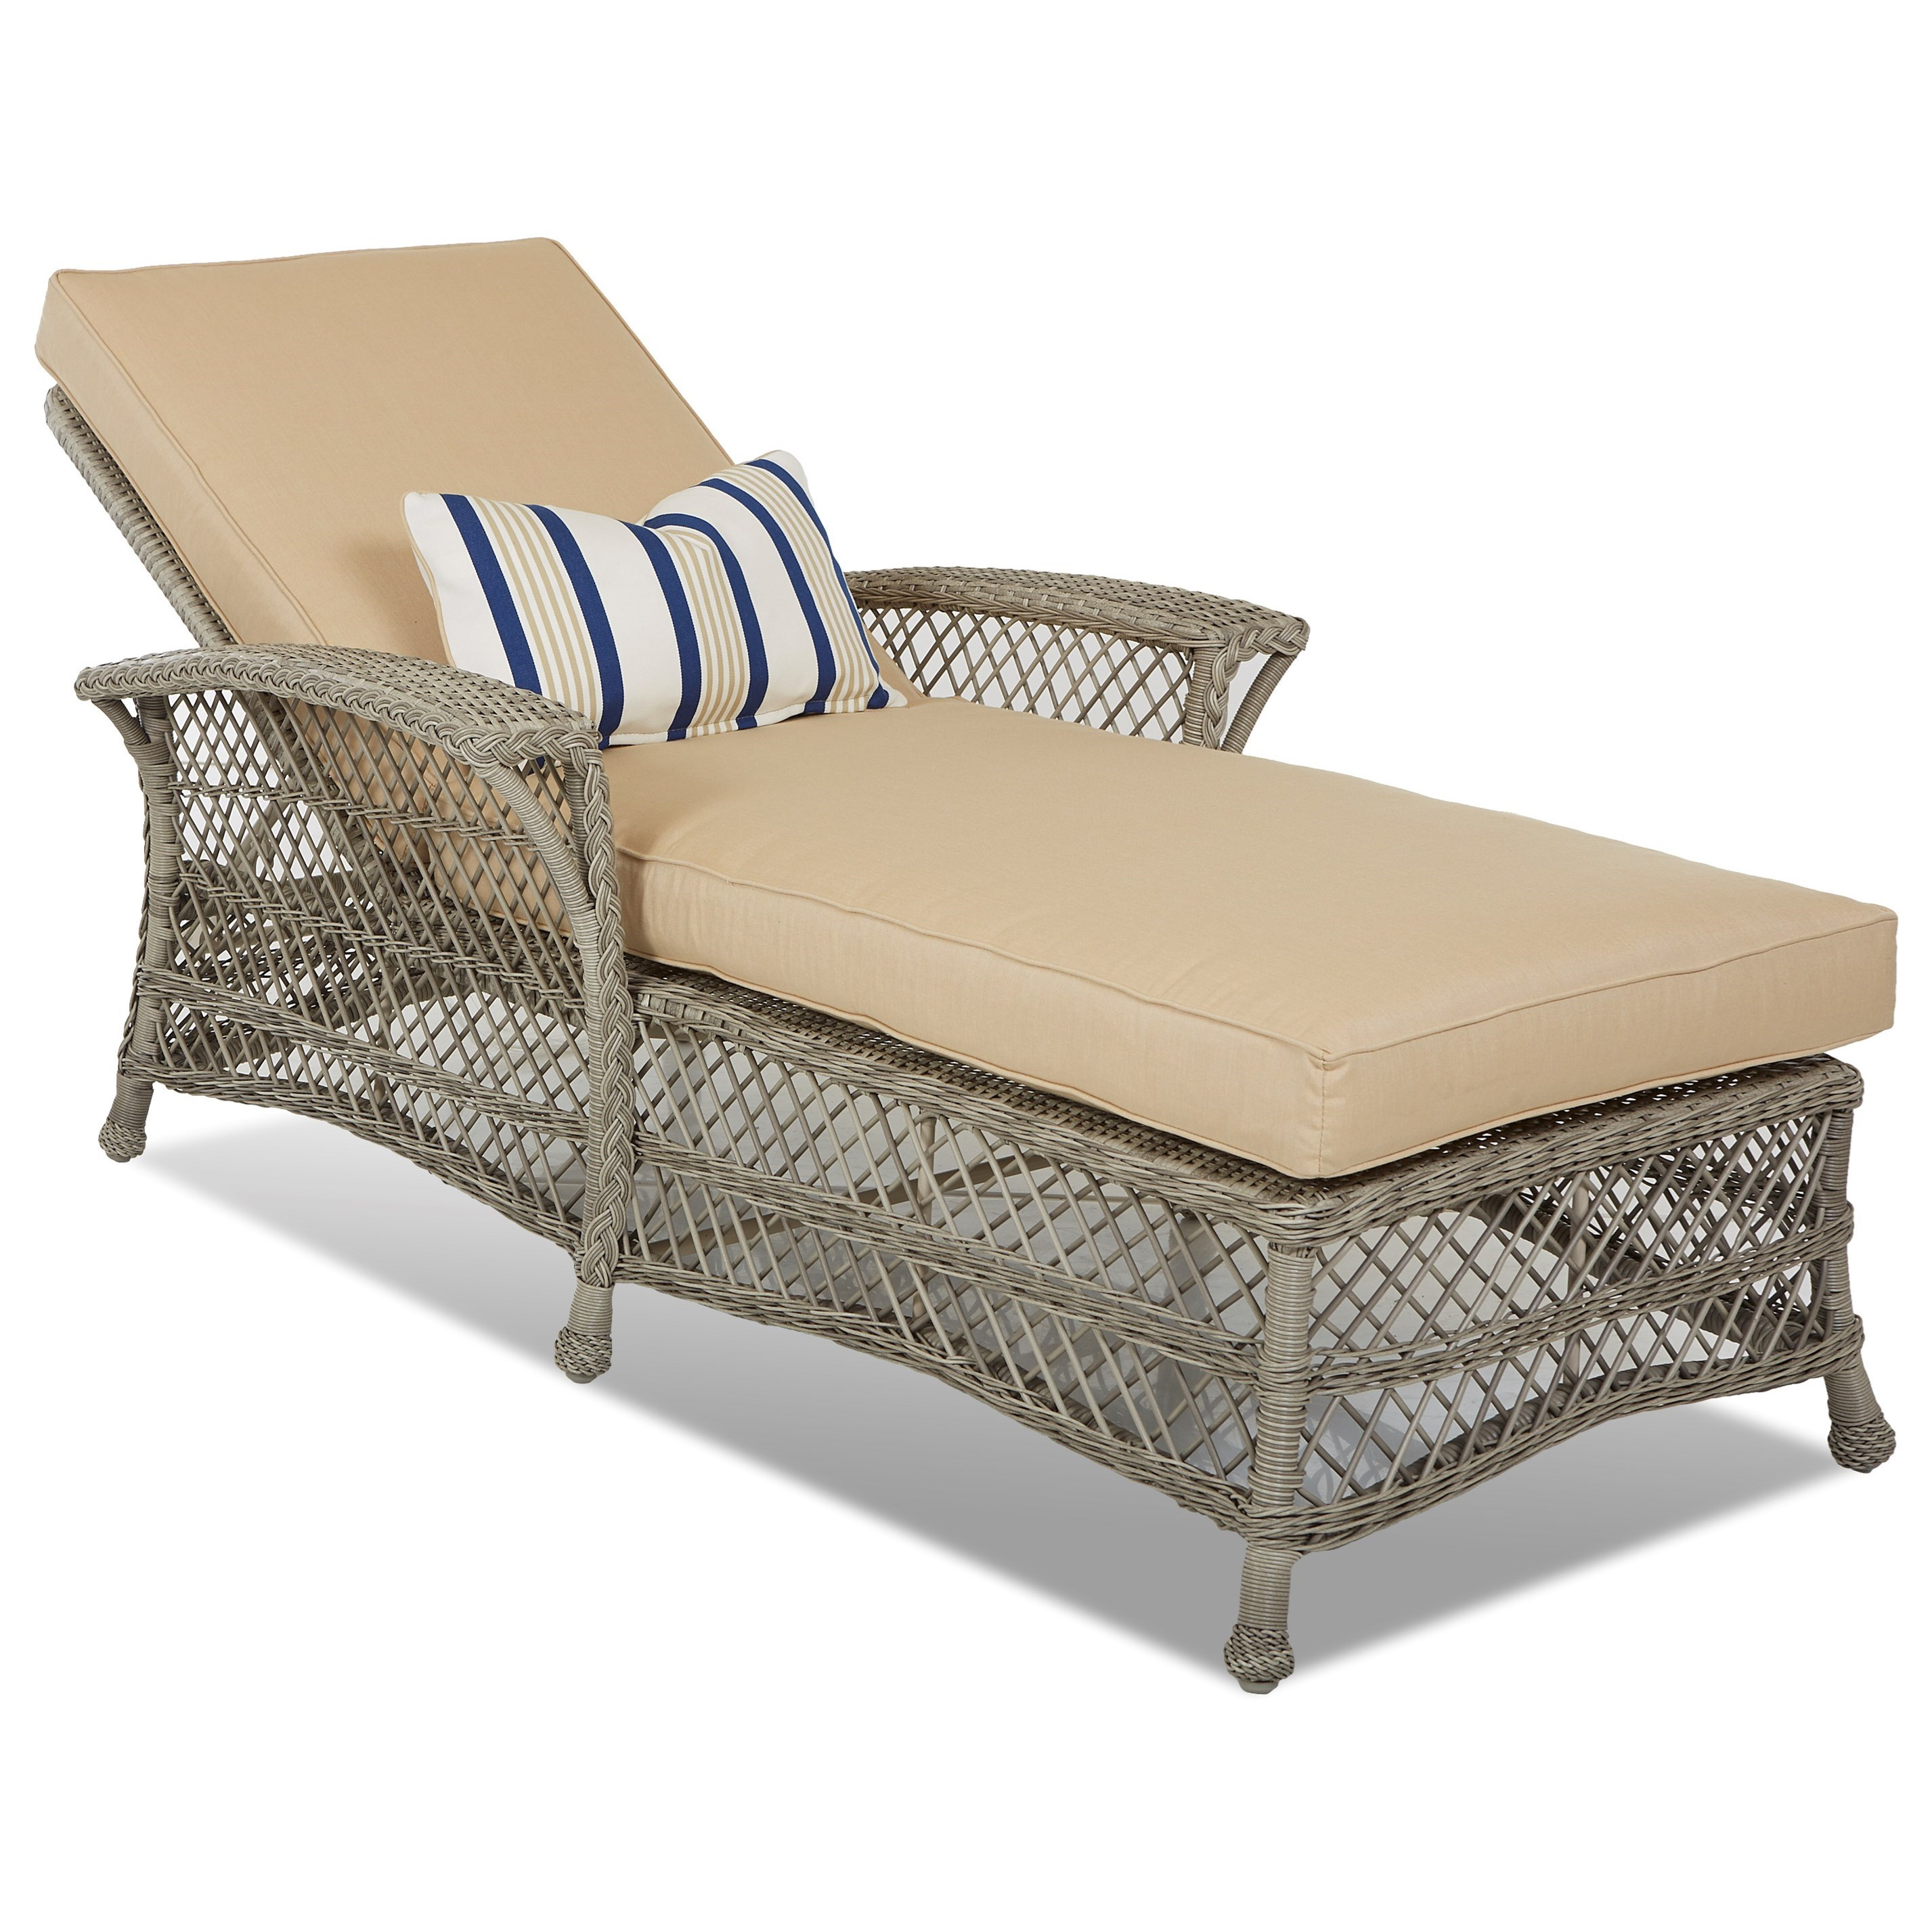 Willow Chaise by Klaussner Outdoor at Nassau Furniture and Mattress